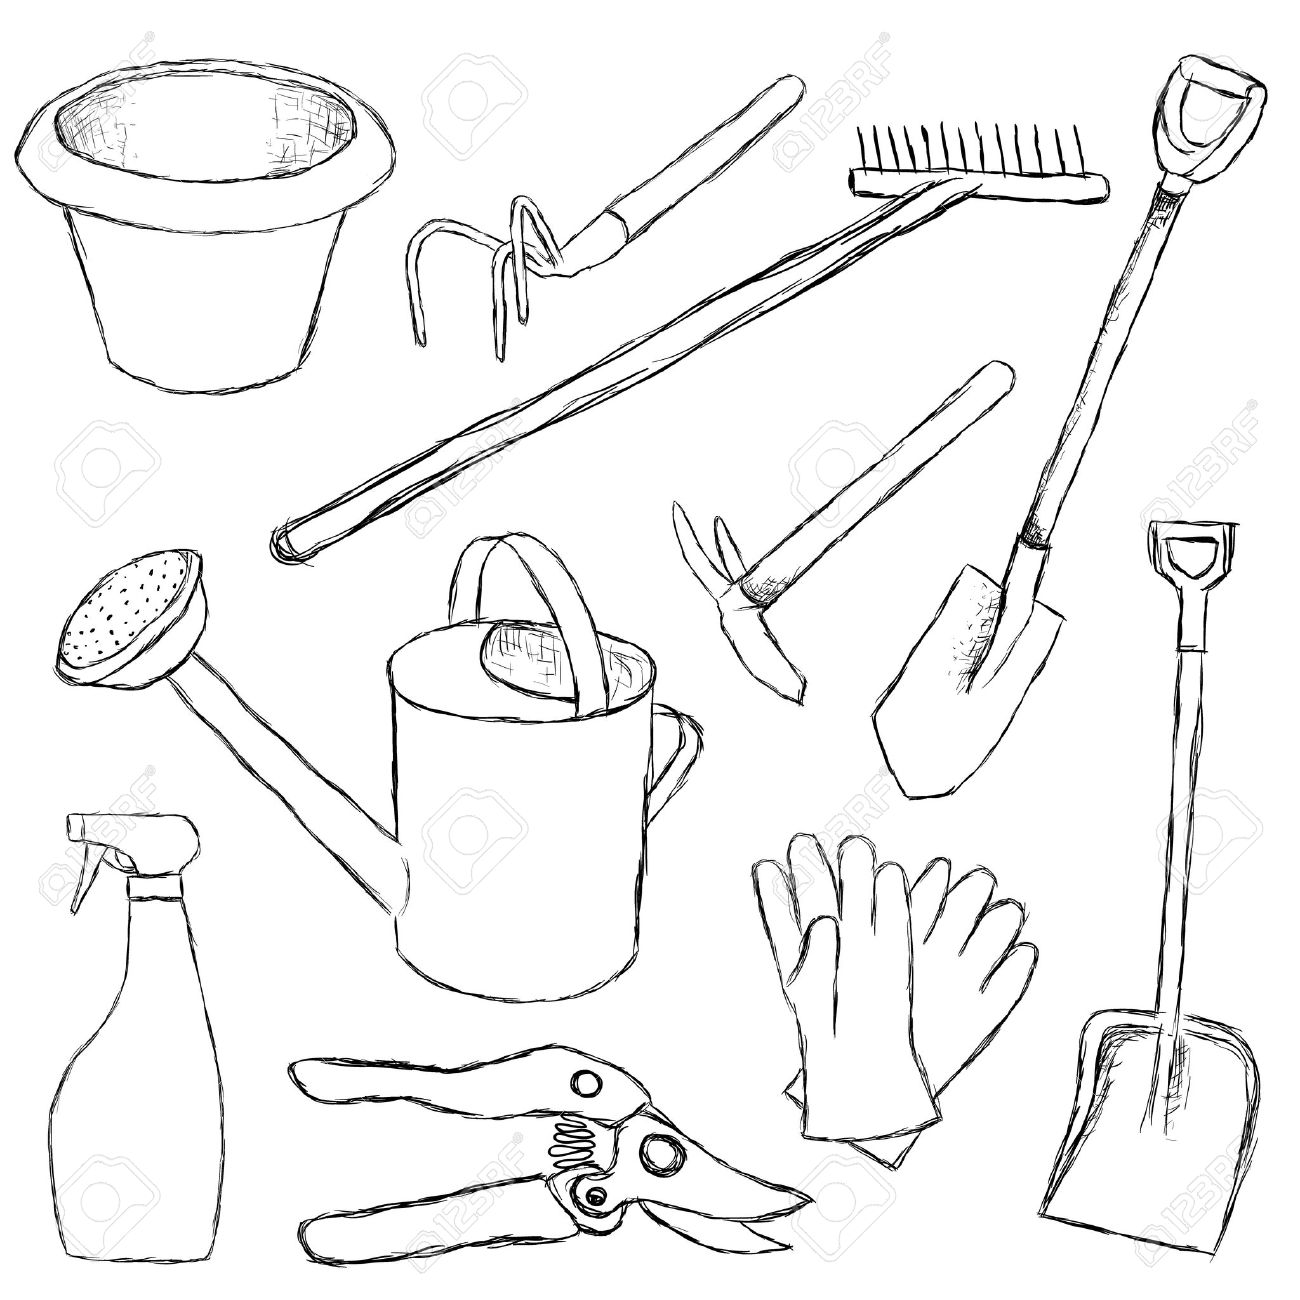 Hand Tools Drawing At Getdrawings